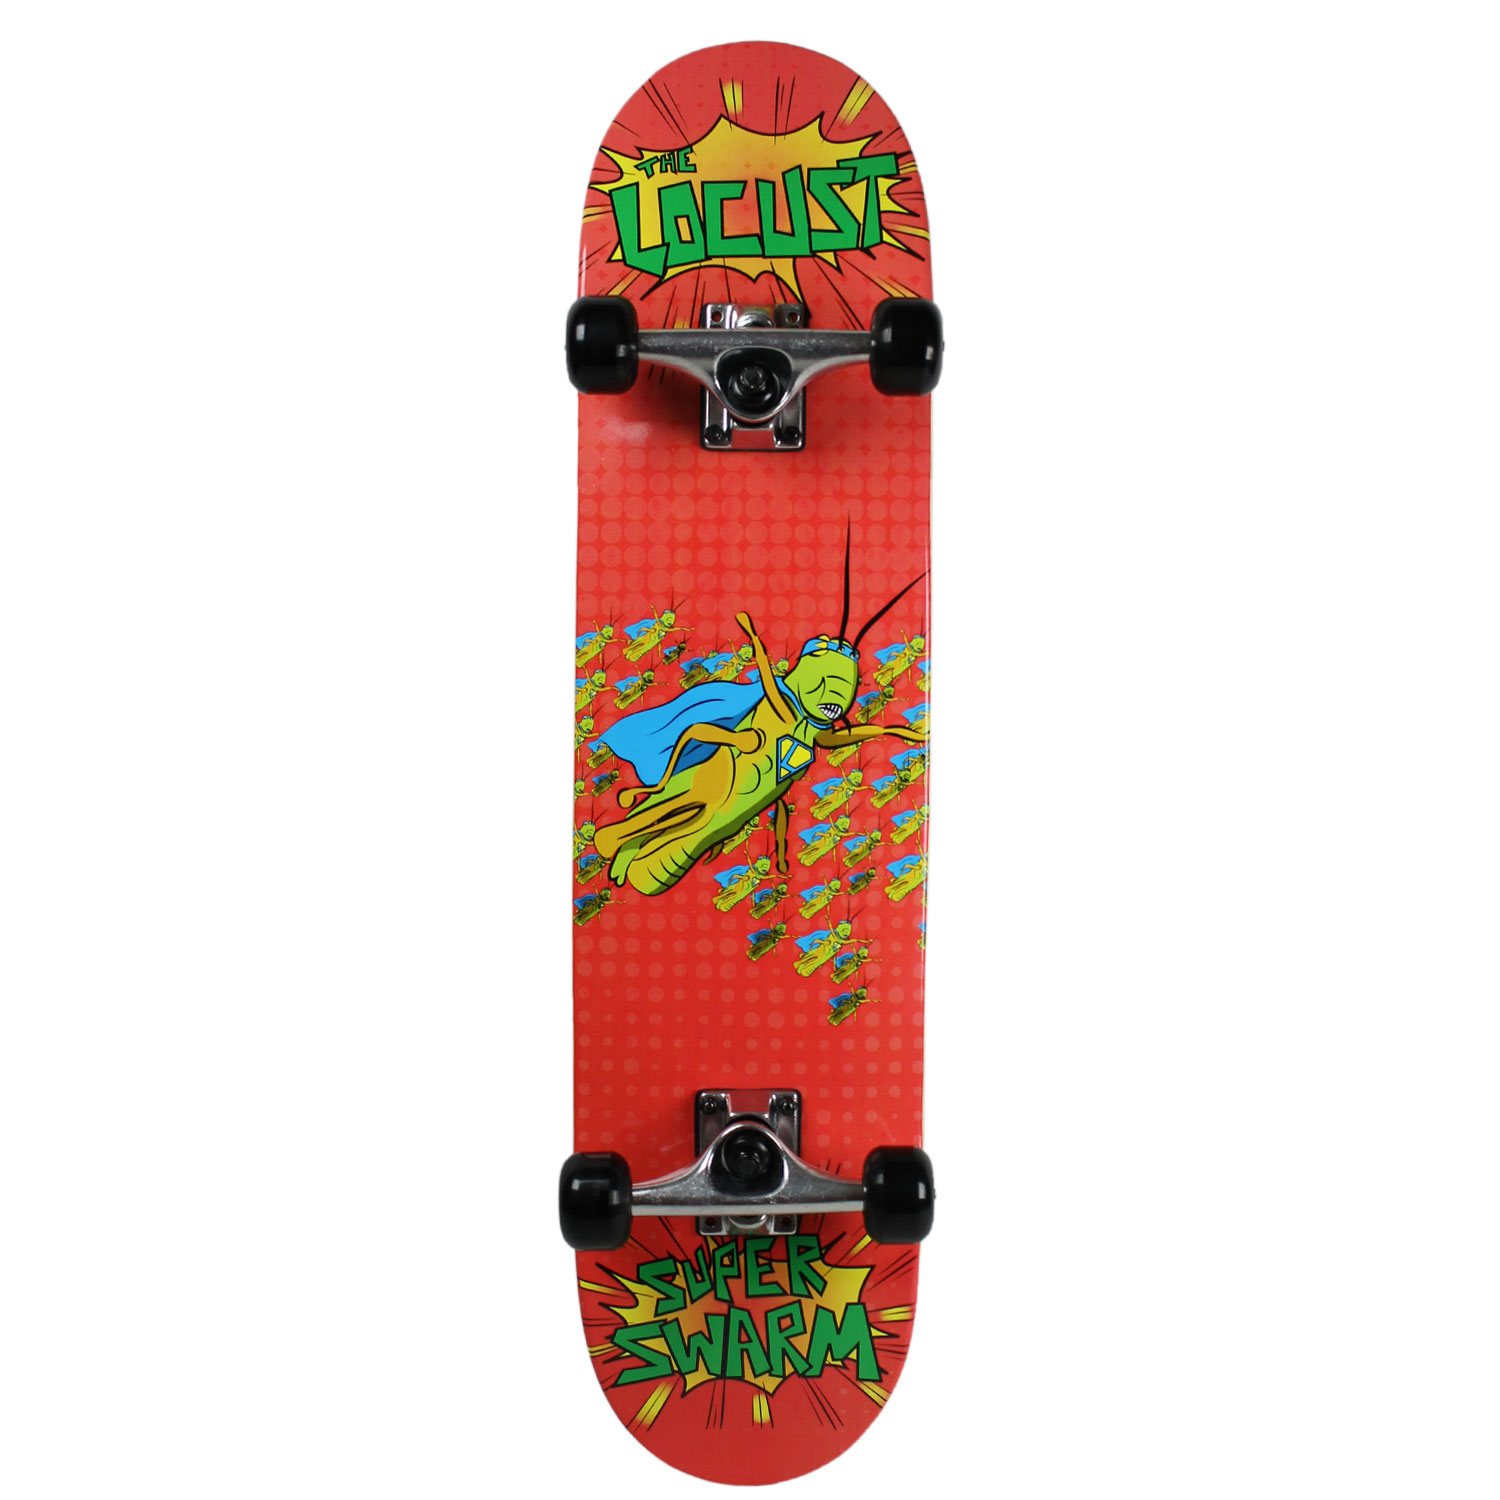 KROWN Skateboard SUPER BUG SERIES Youth THE LOCUST Red 7.25""